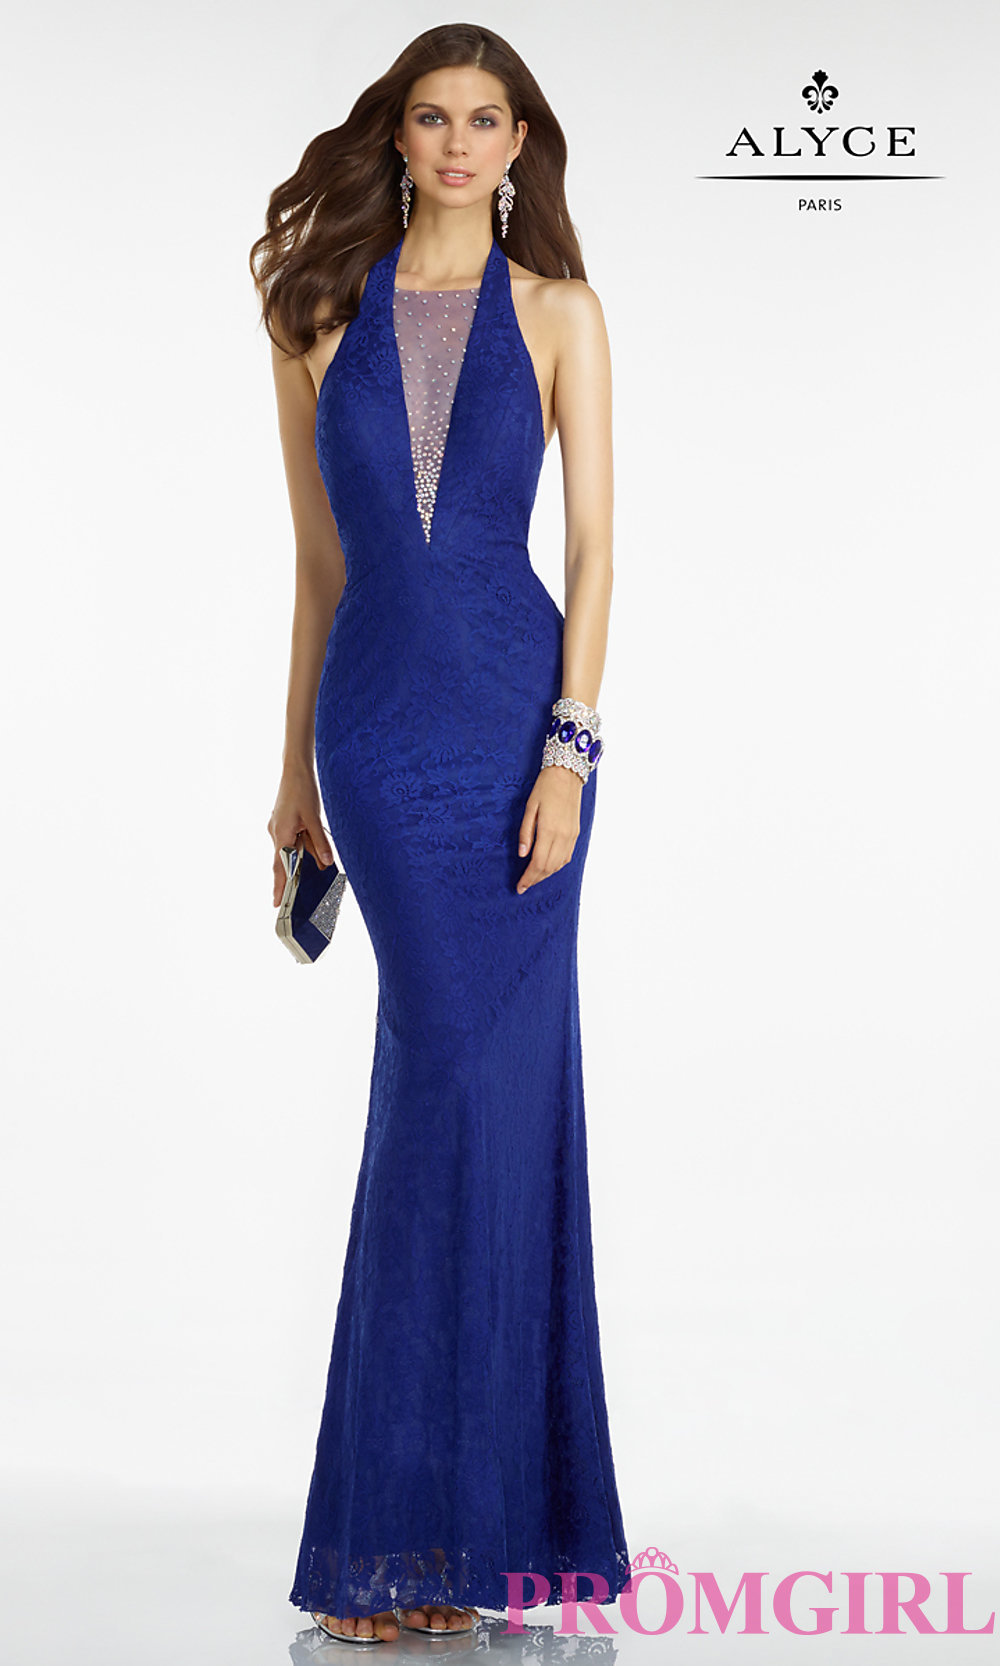 Dress: Lovely Plunging Neckline Dress For Party Dress Ideas ...